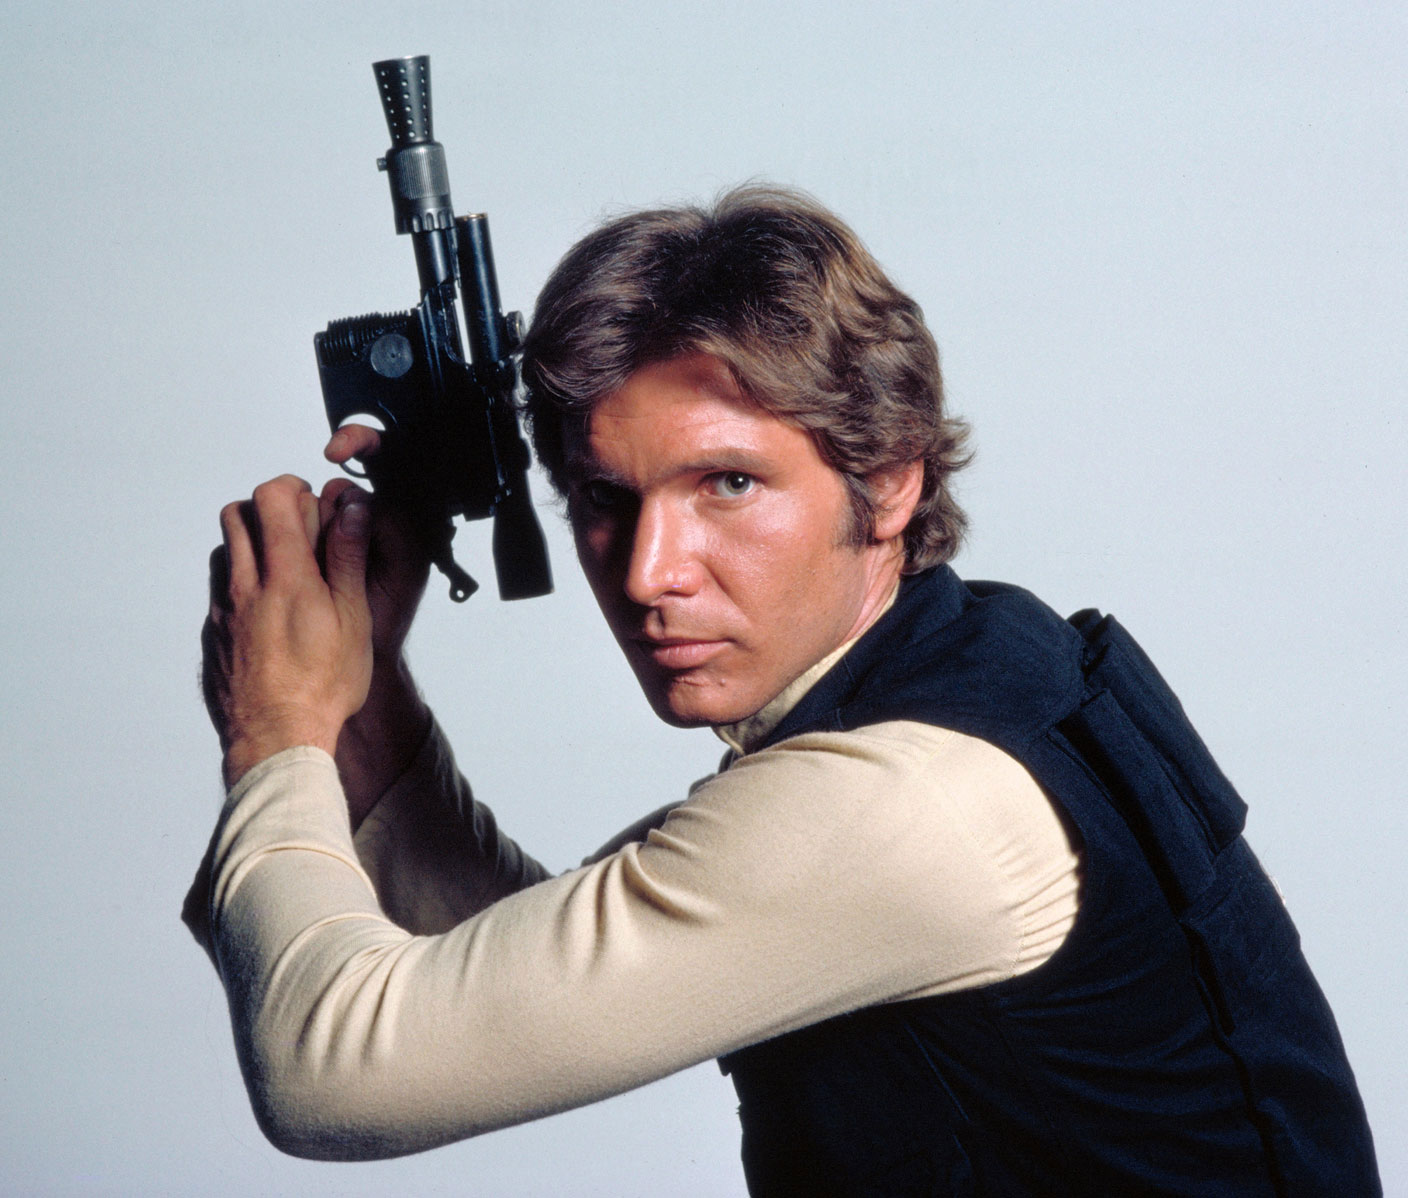 han-solo-with-blaster1